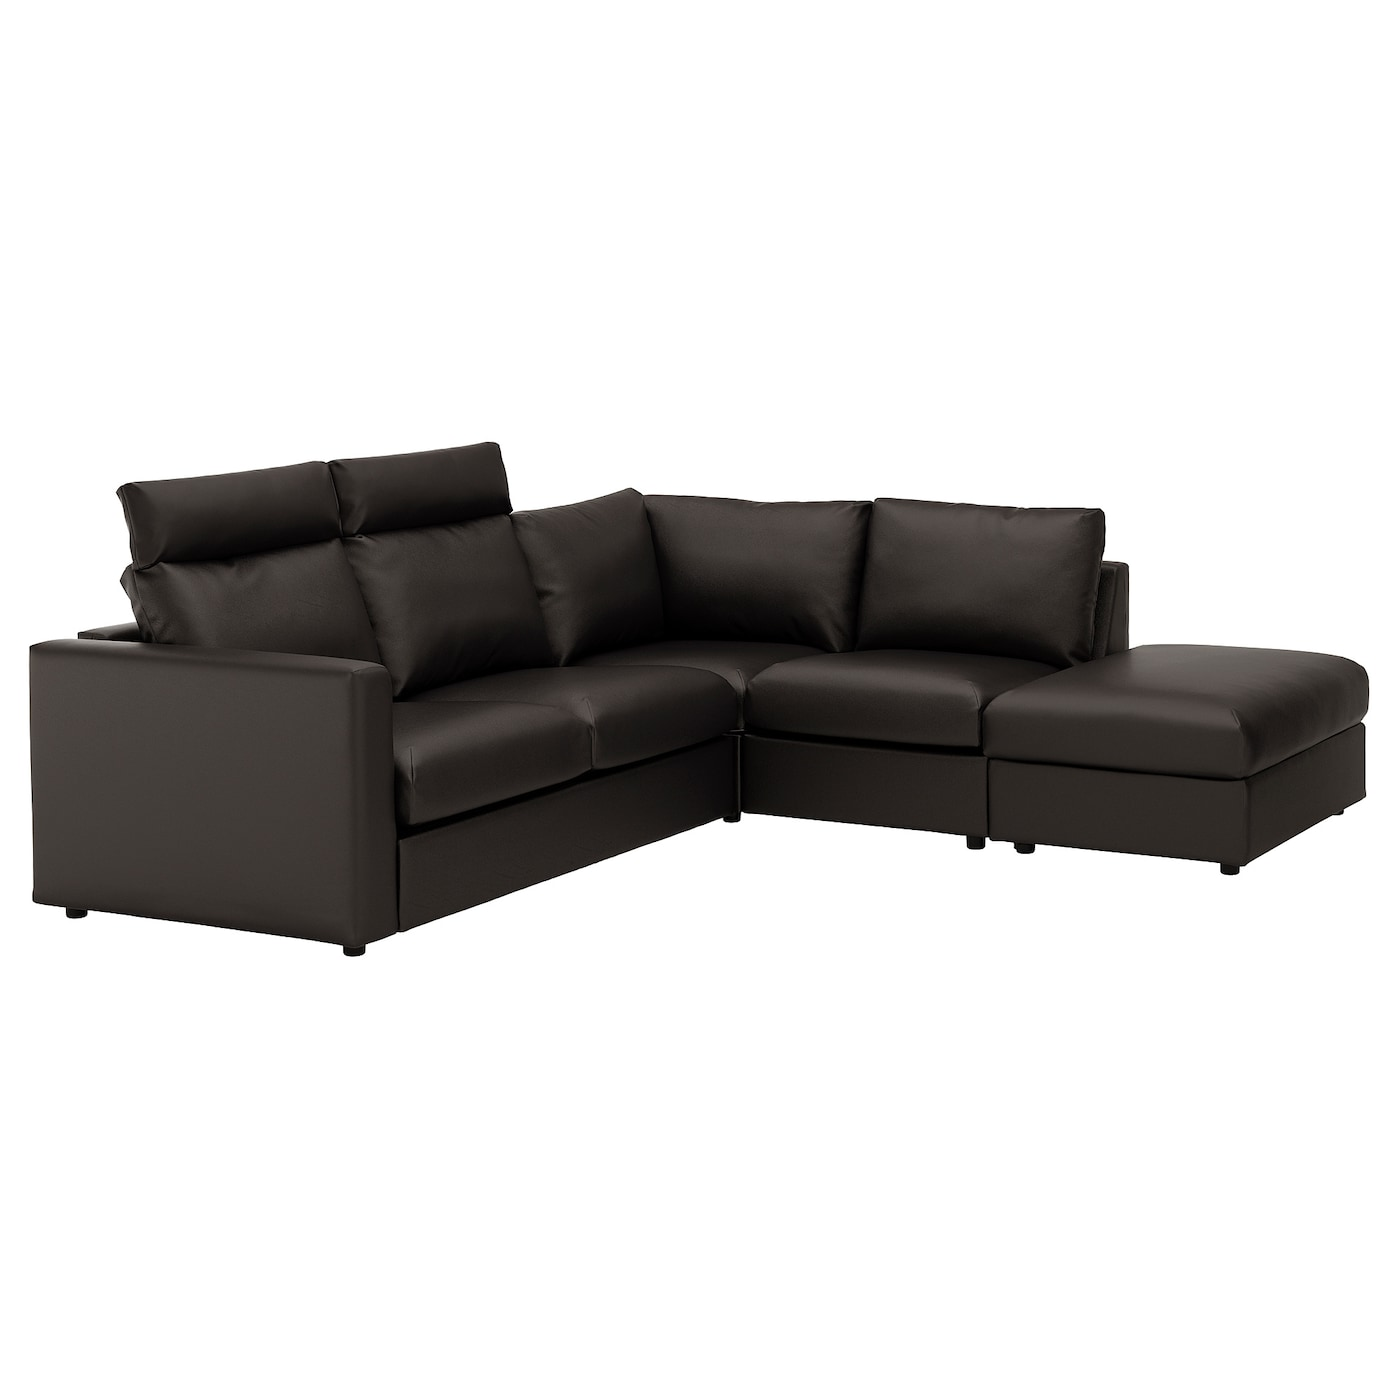 IKEA VIMLE corner sofa, 4-seat 10 year guarantee. Read about the terms in the guarantee brochure.